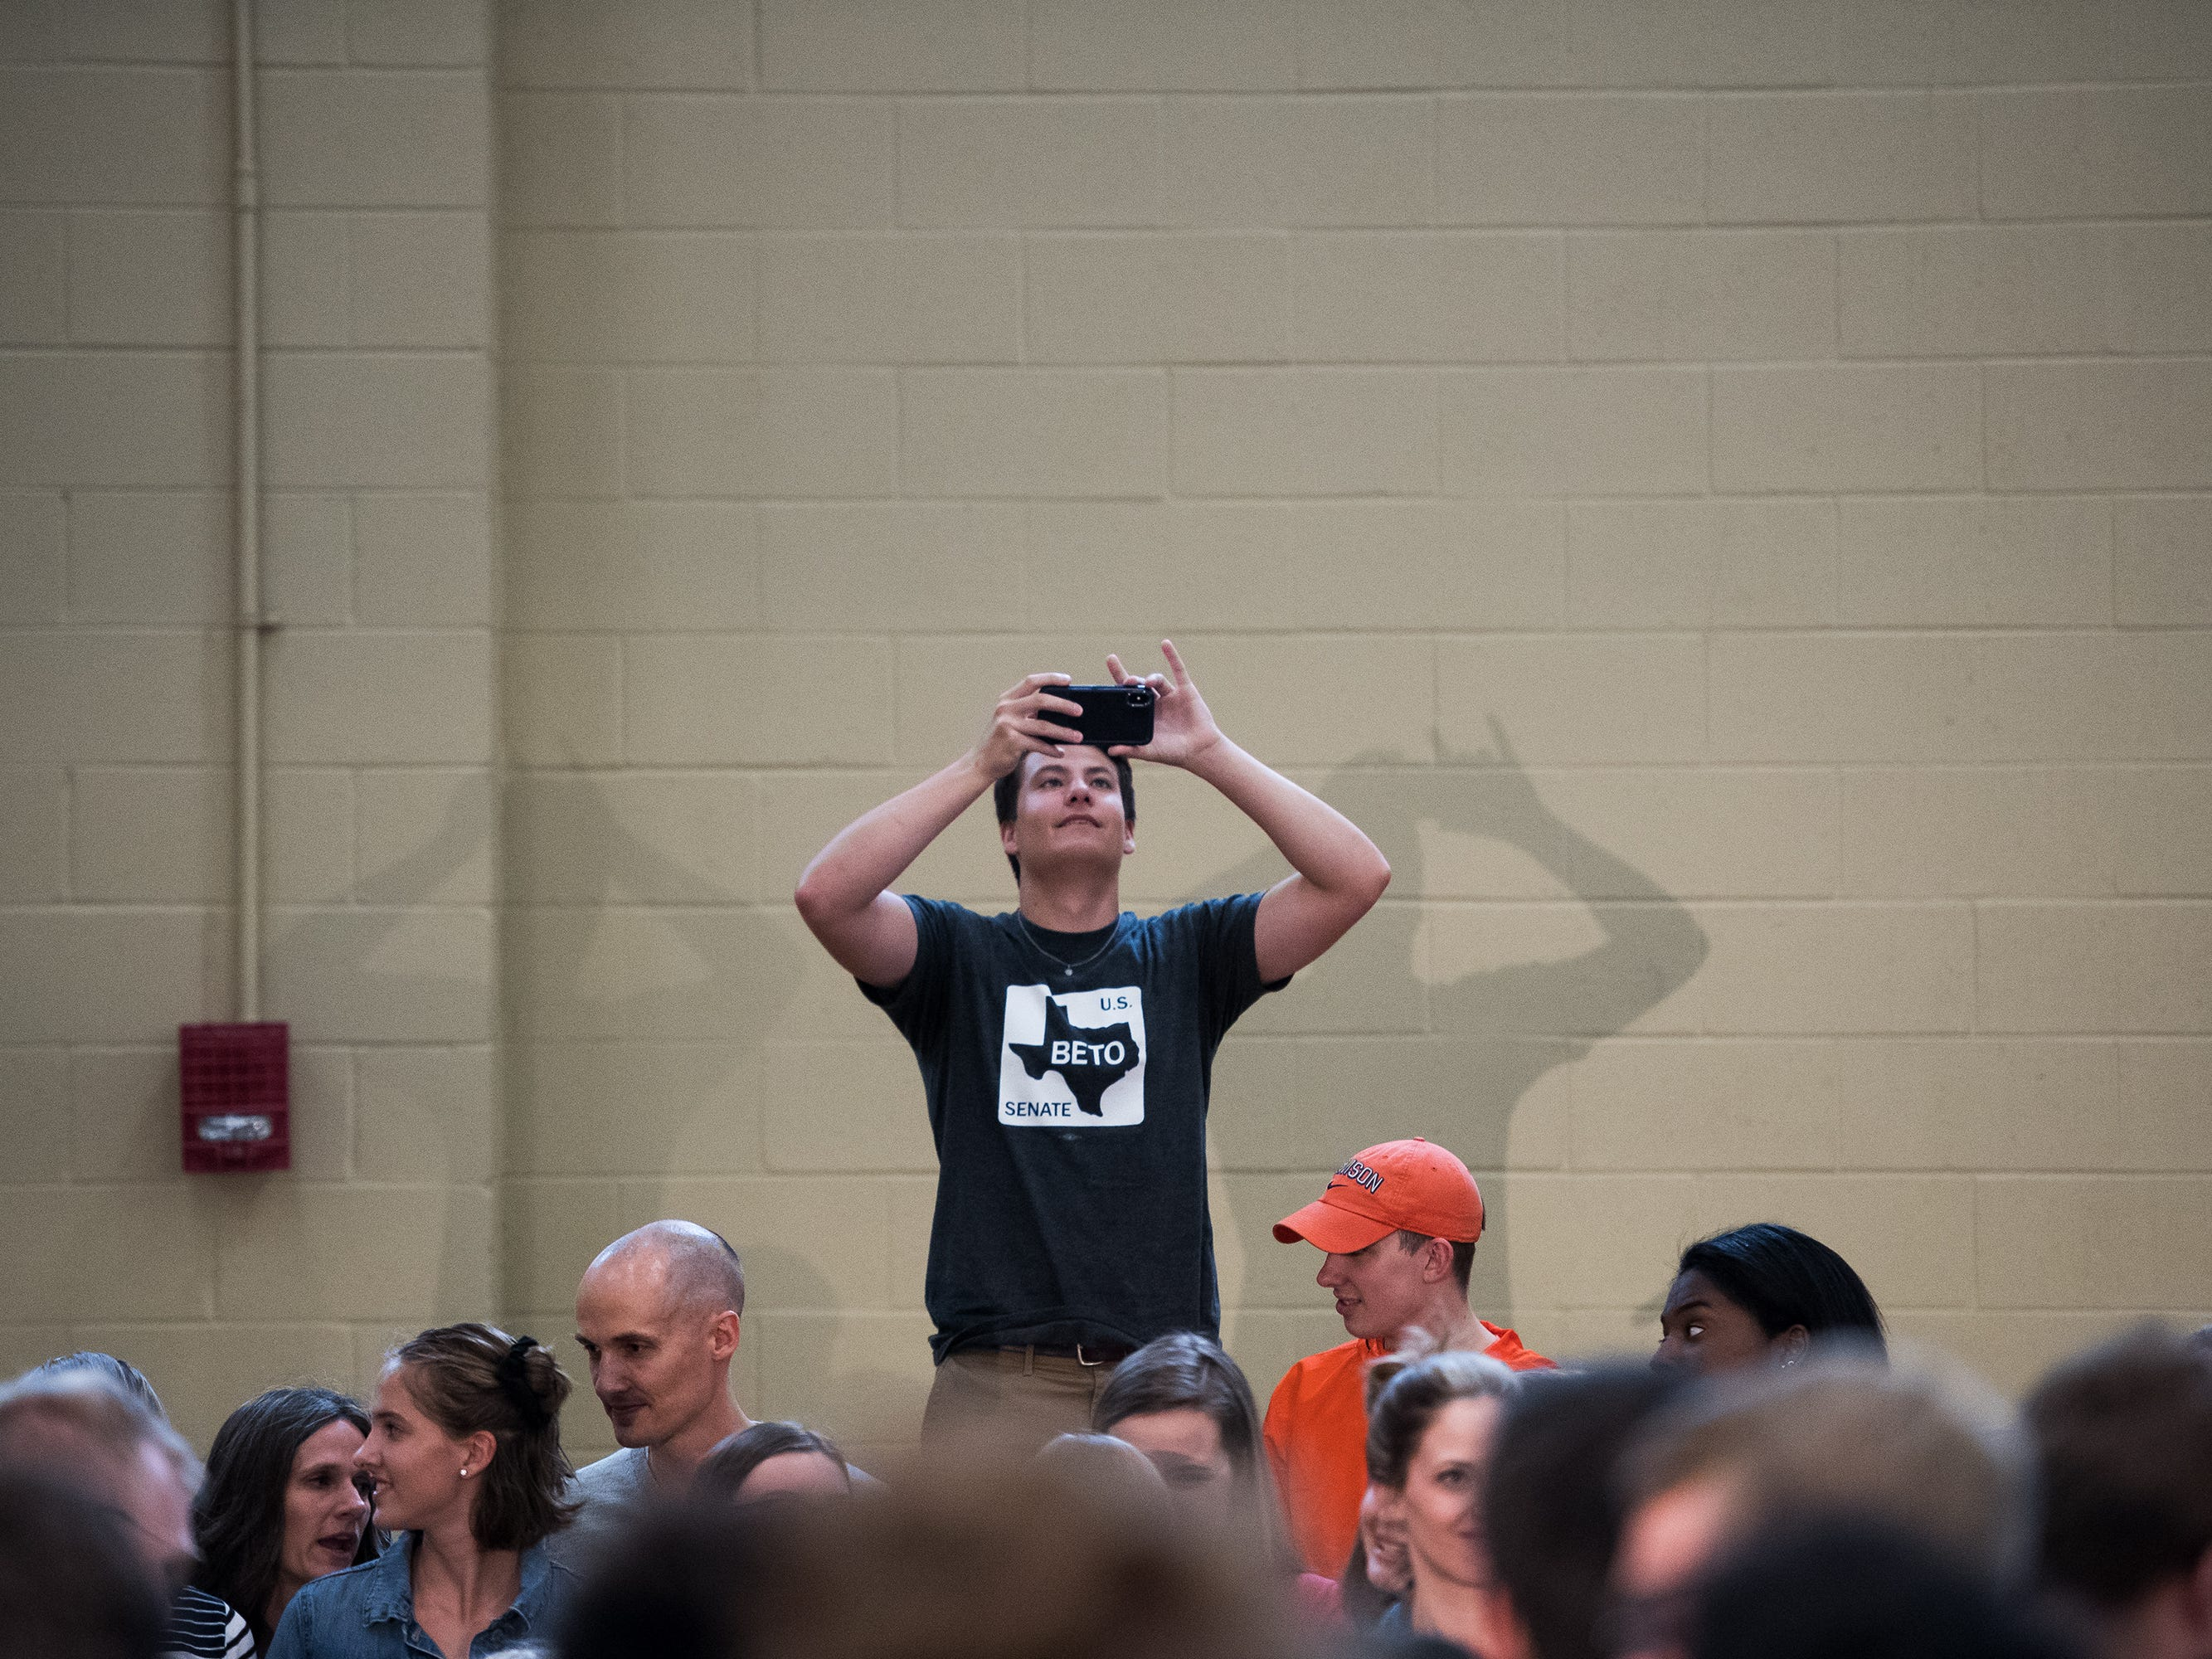 Matthew Jordan, 19, takes a photo of the crowd before democratic presidential hopeful Beto O'Rourke speaks at a rally at Clemson University's Five Recreation Center Sunday, April 14, 2019.